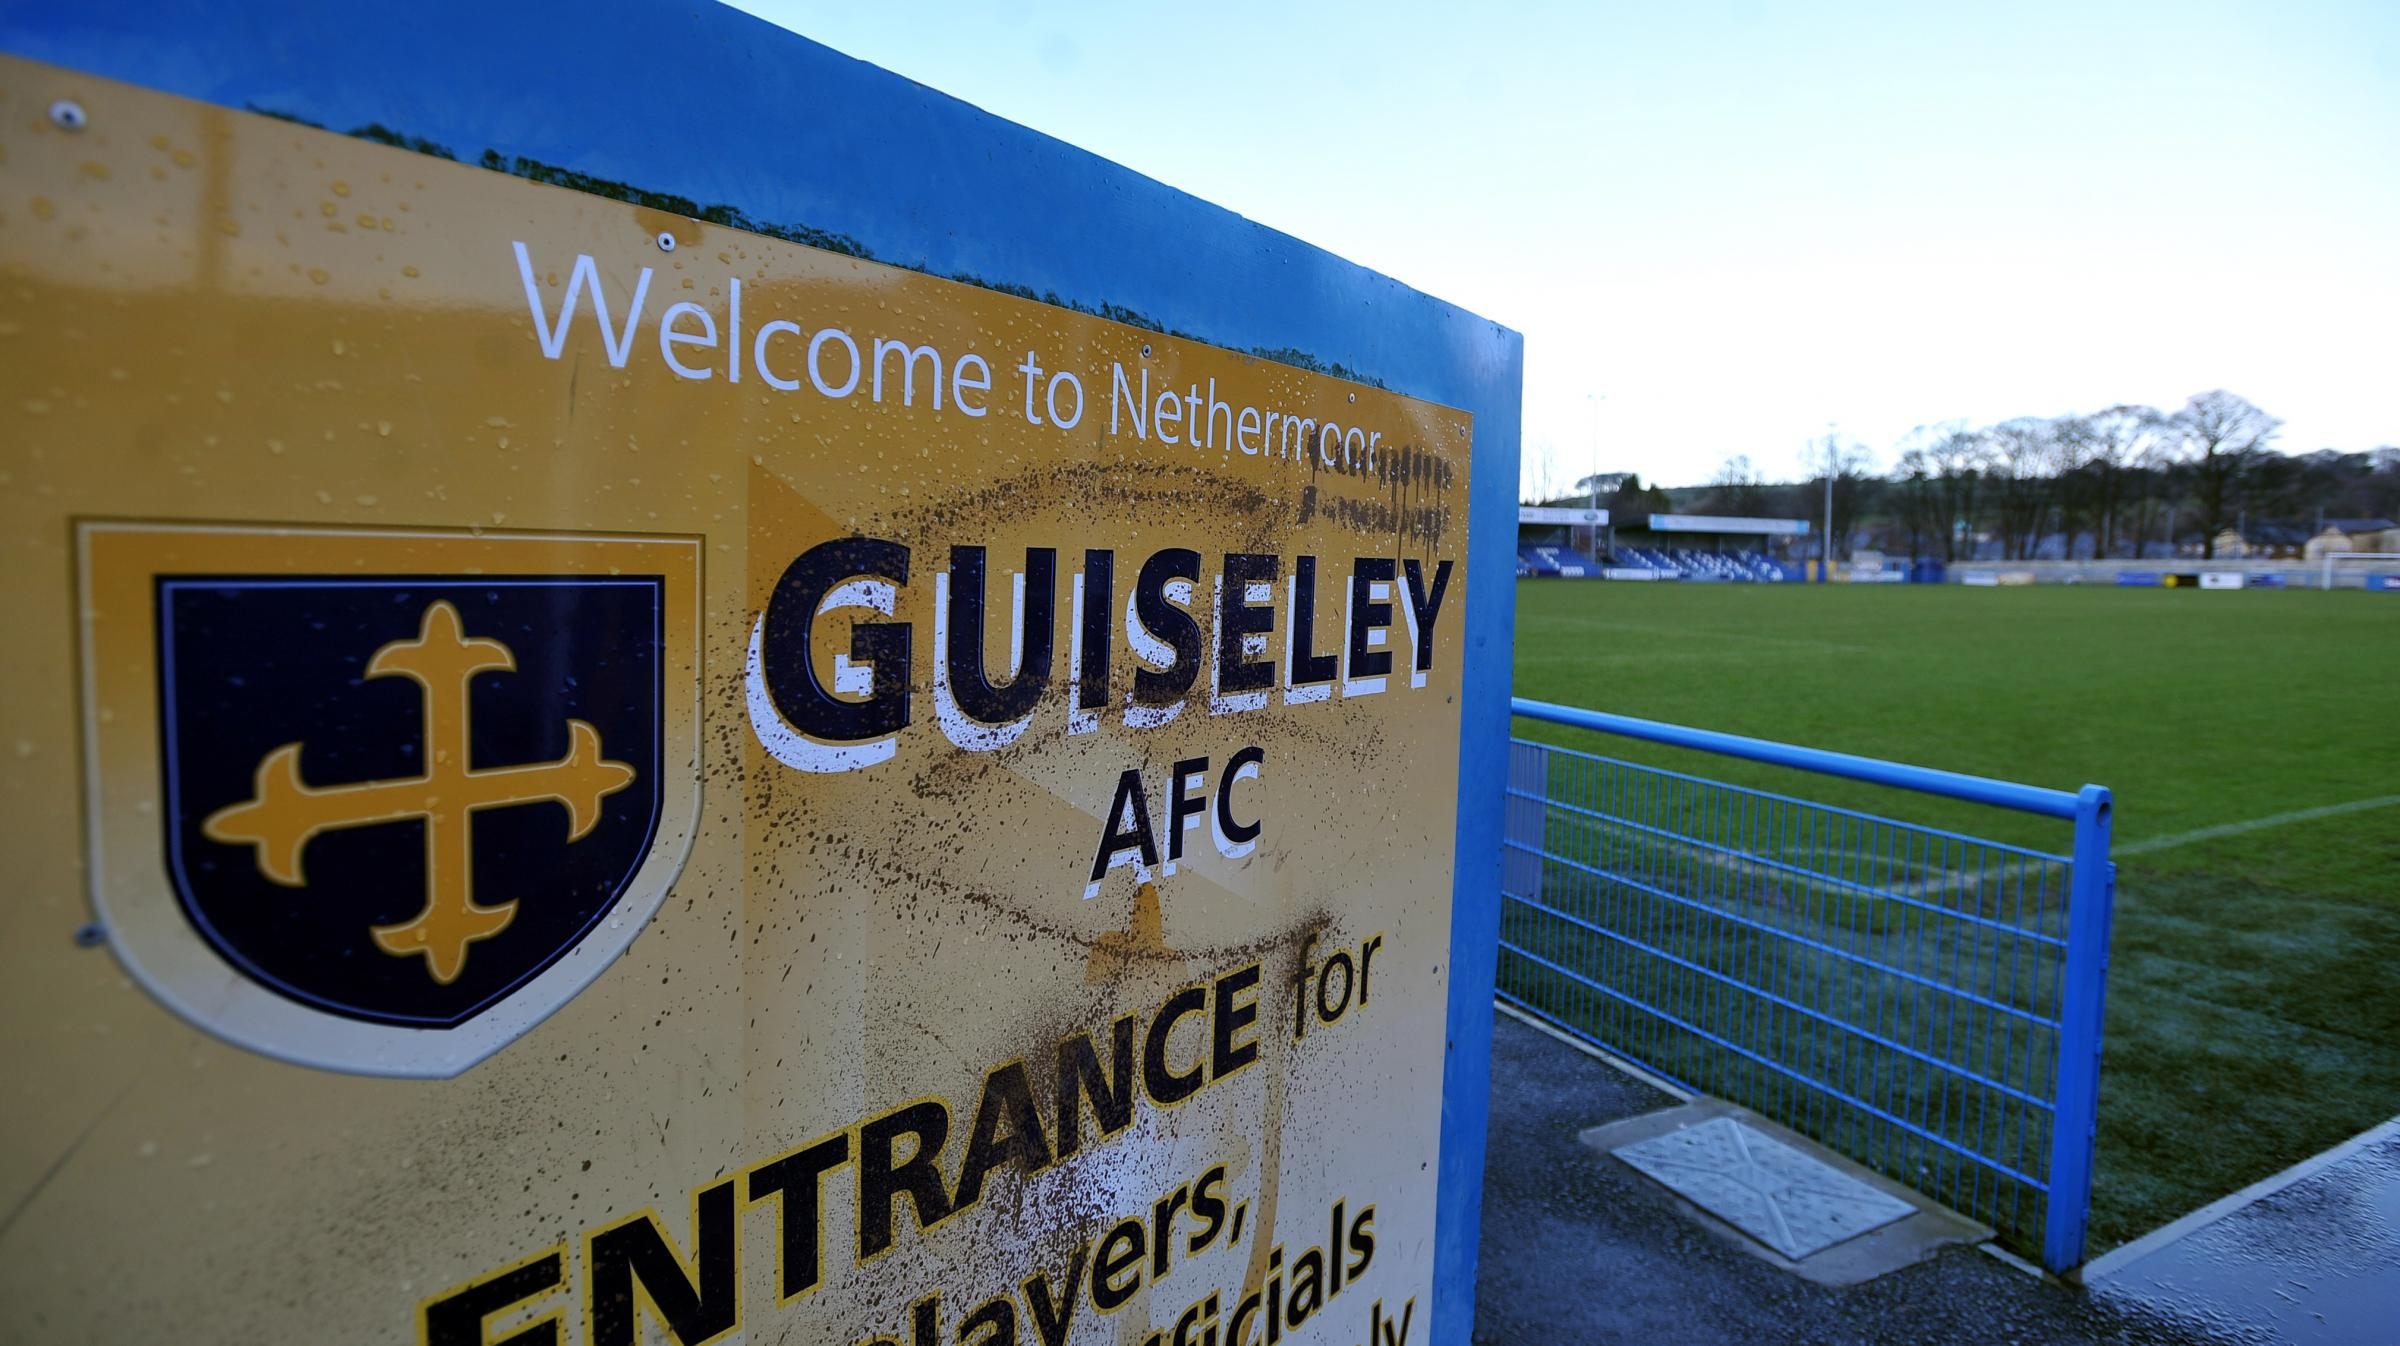 Guiseley's home match has been called off